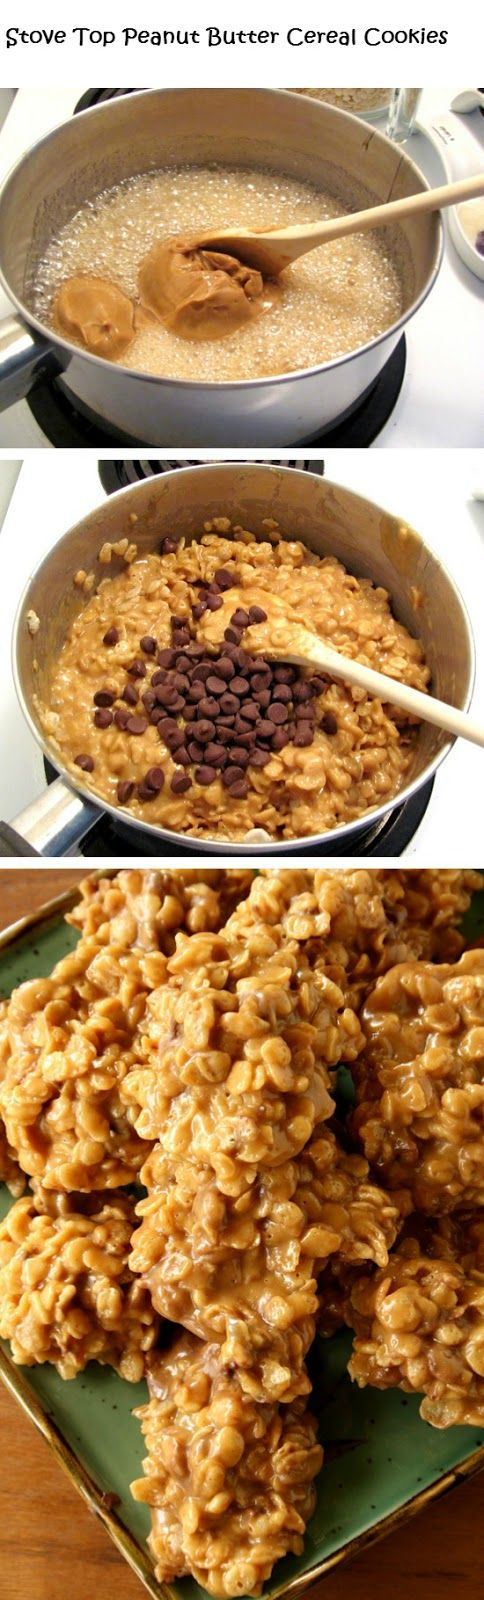 21 fun and easy treats you can make with cereal cookie for Desserts you can make with peanut butter